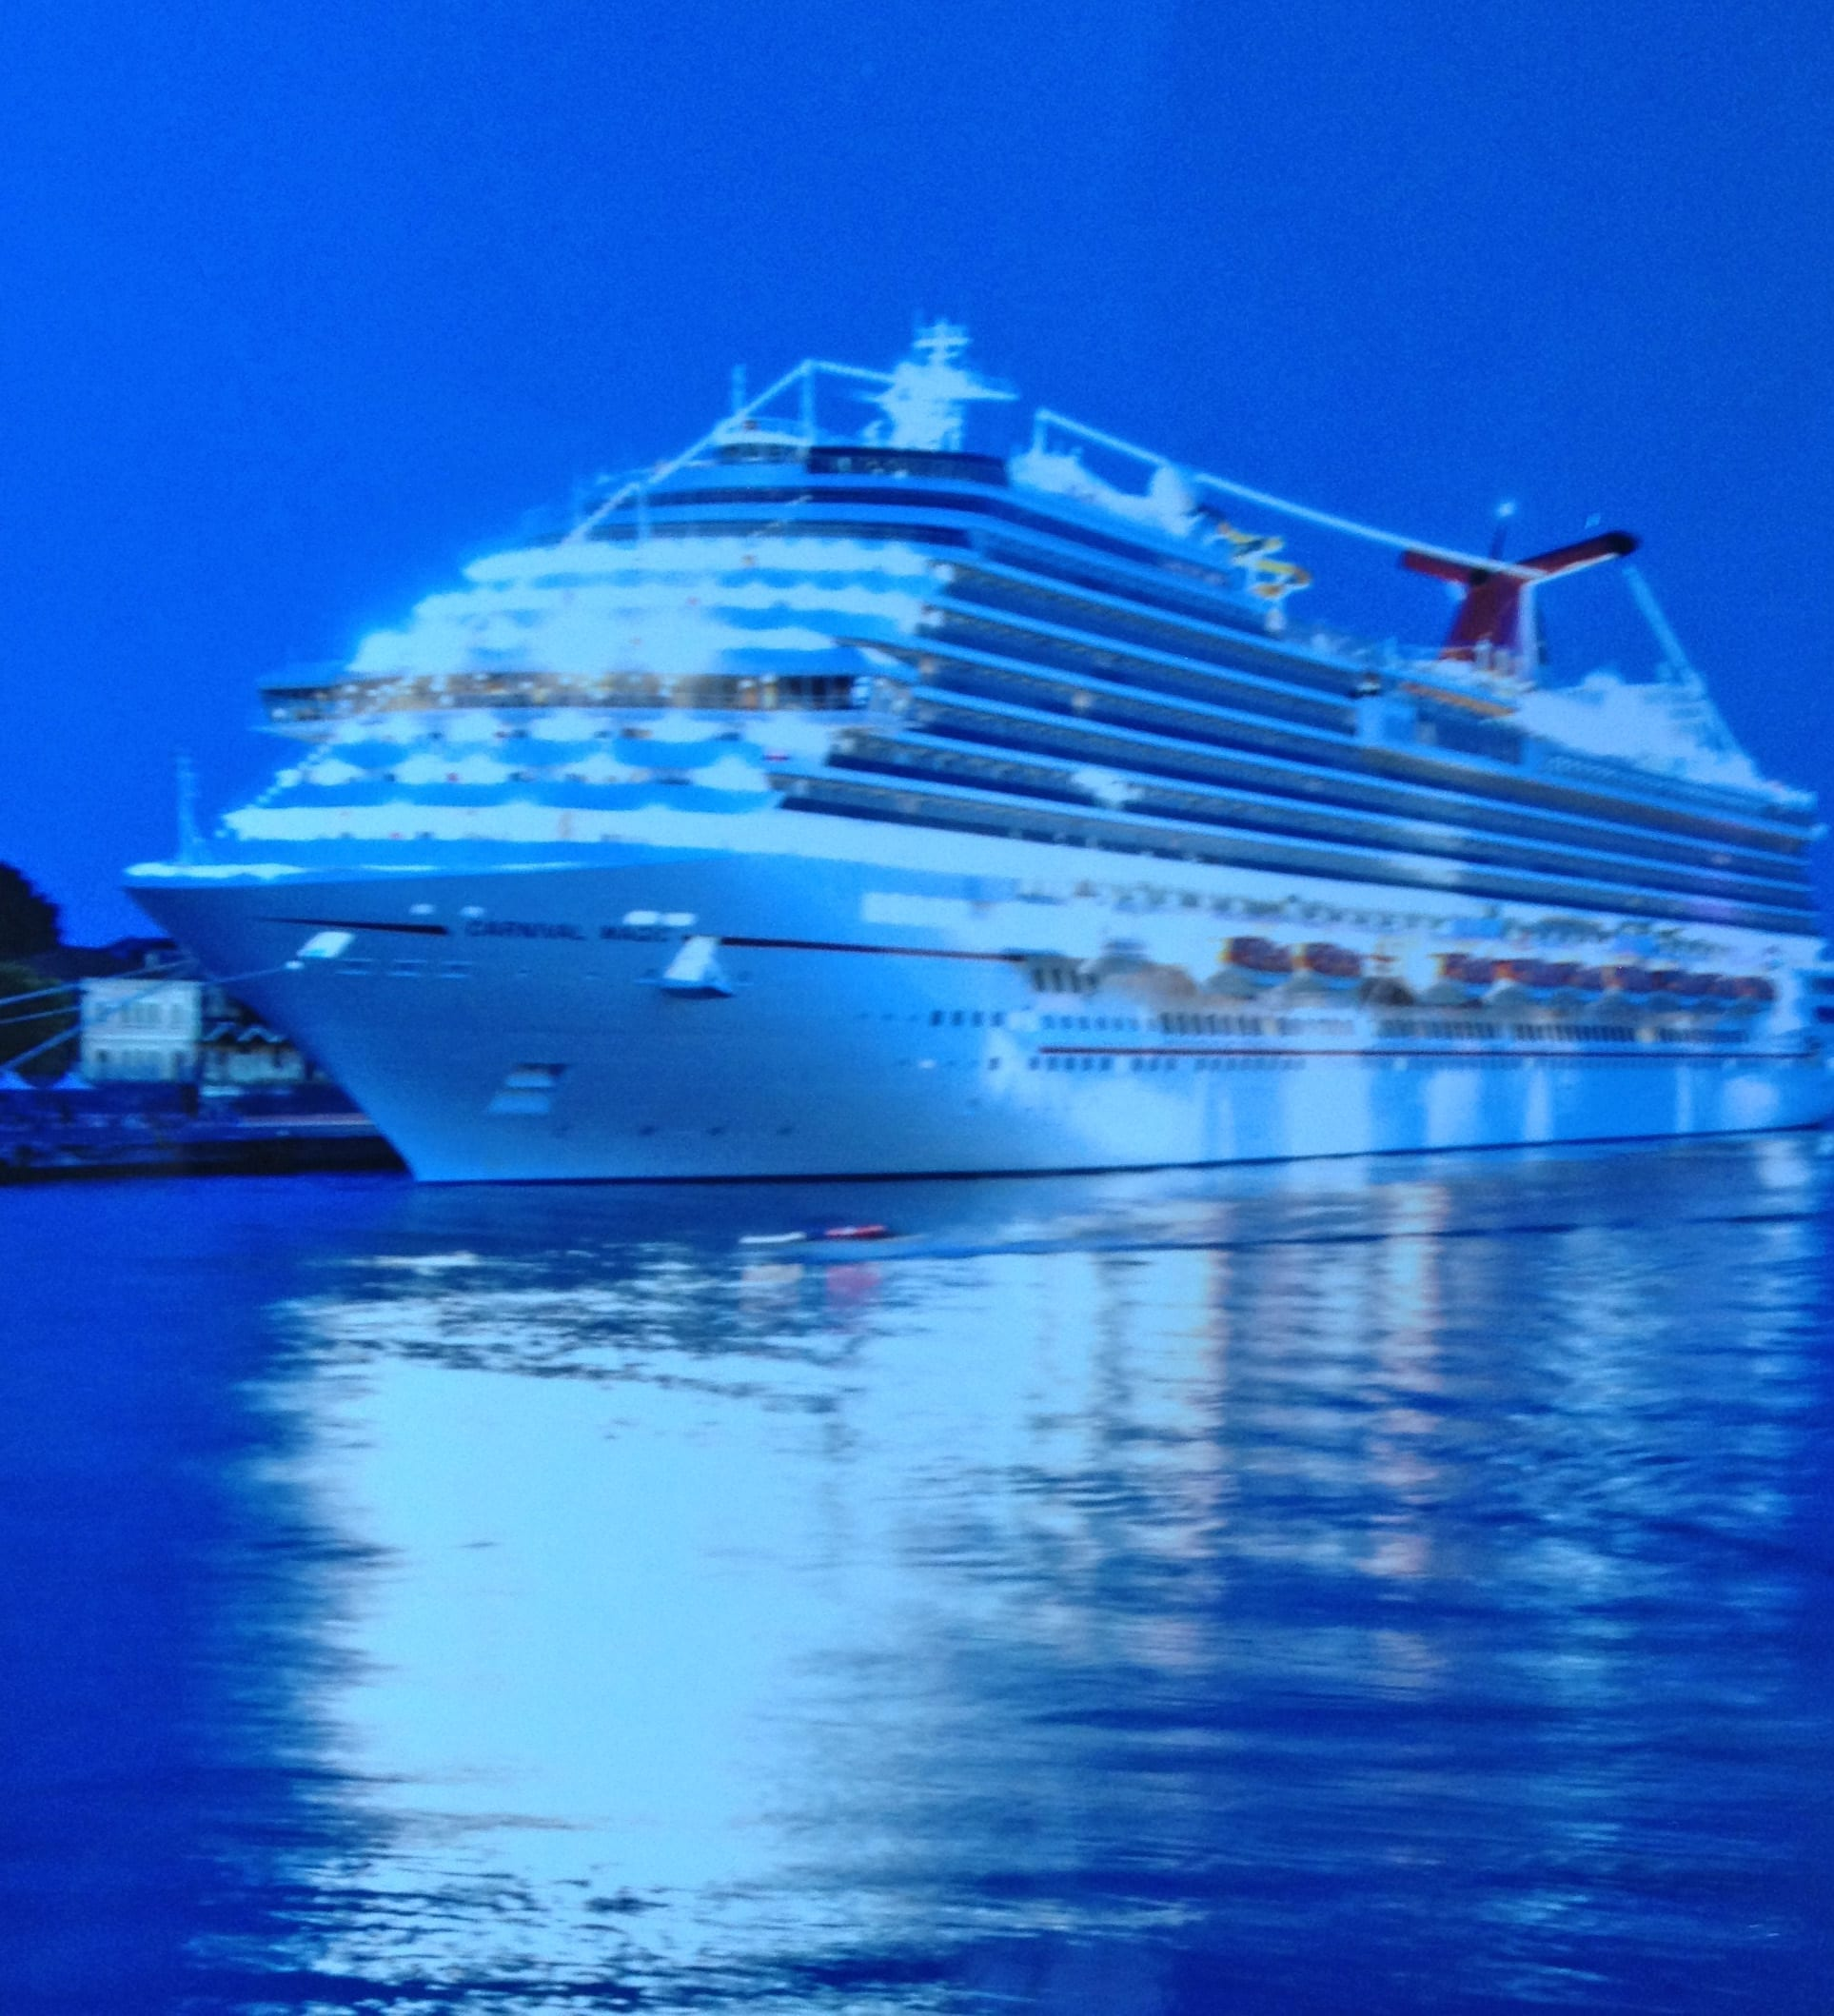 Carnival cruise magic scottsdale luxury real estate for High end cruise ships